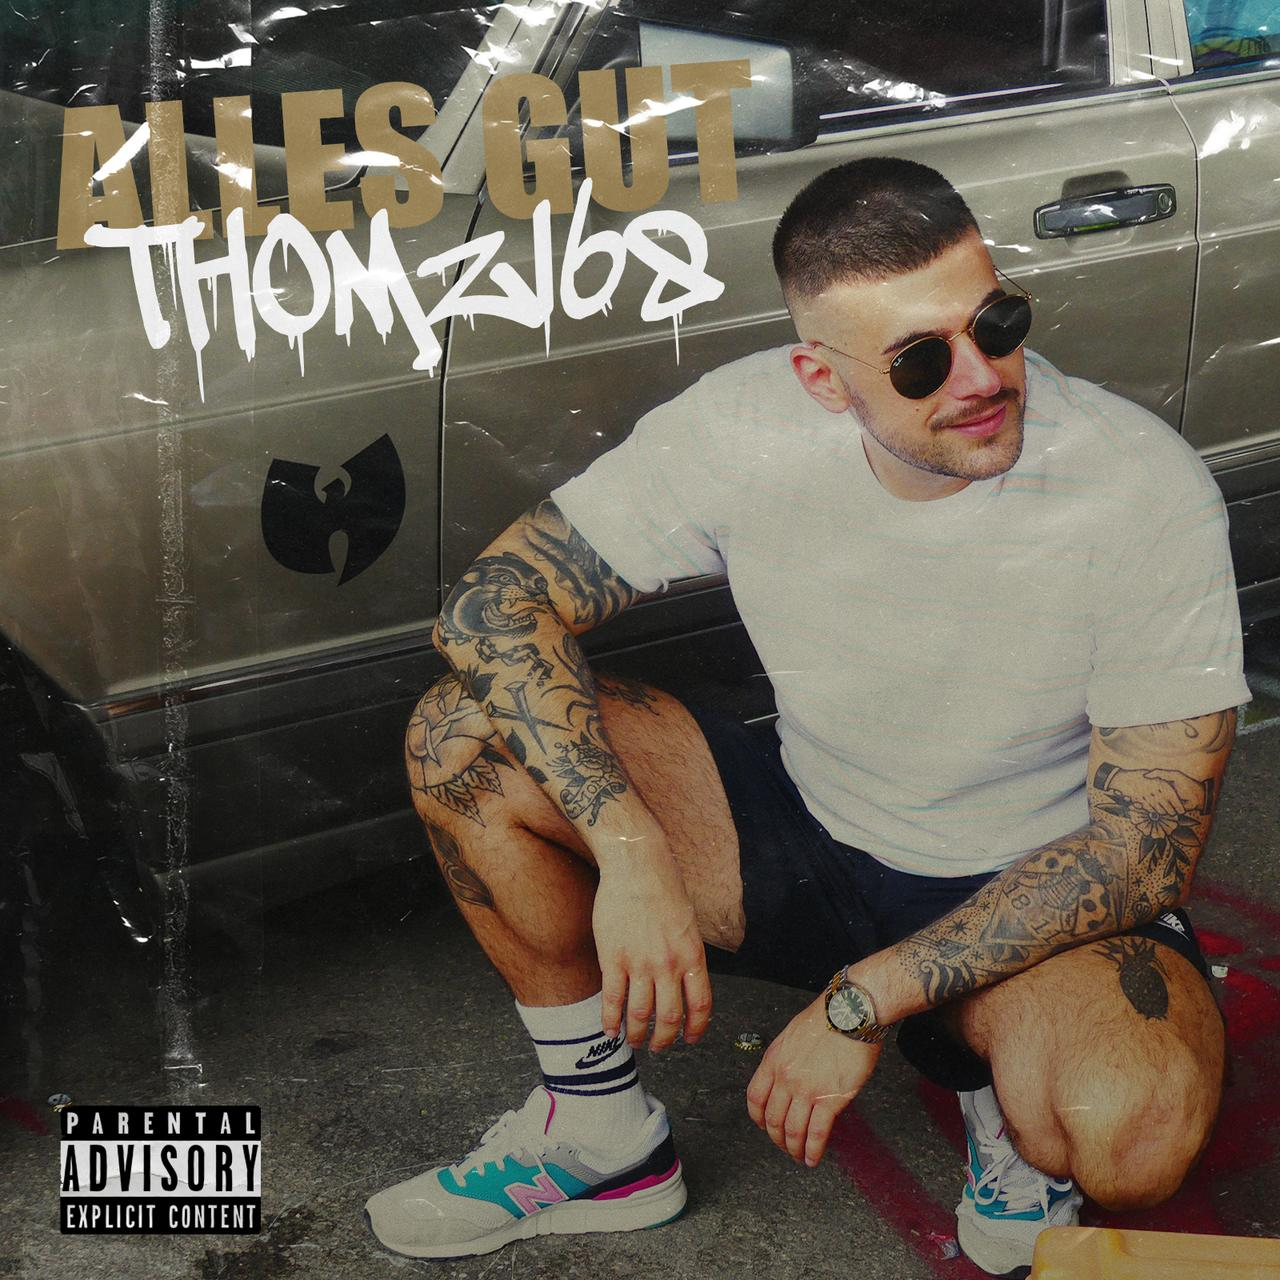 Upcoming: thomzi68 - Alles Gut